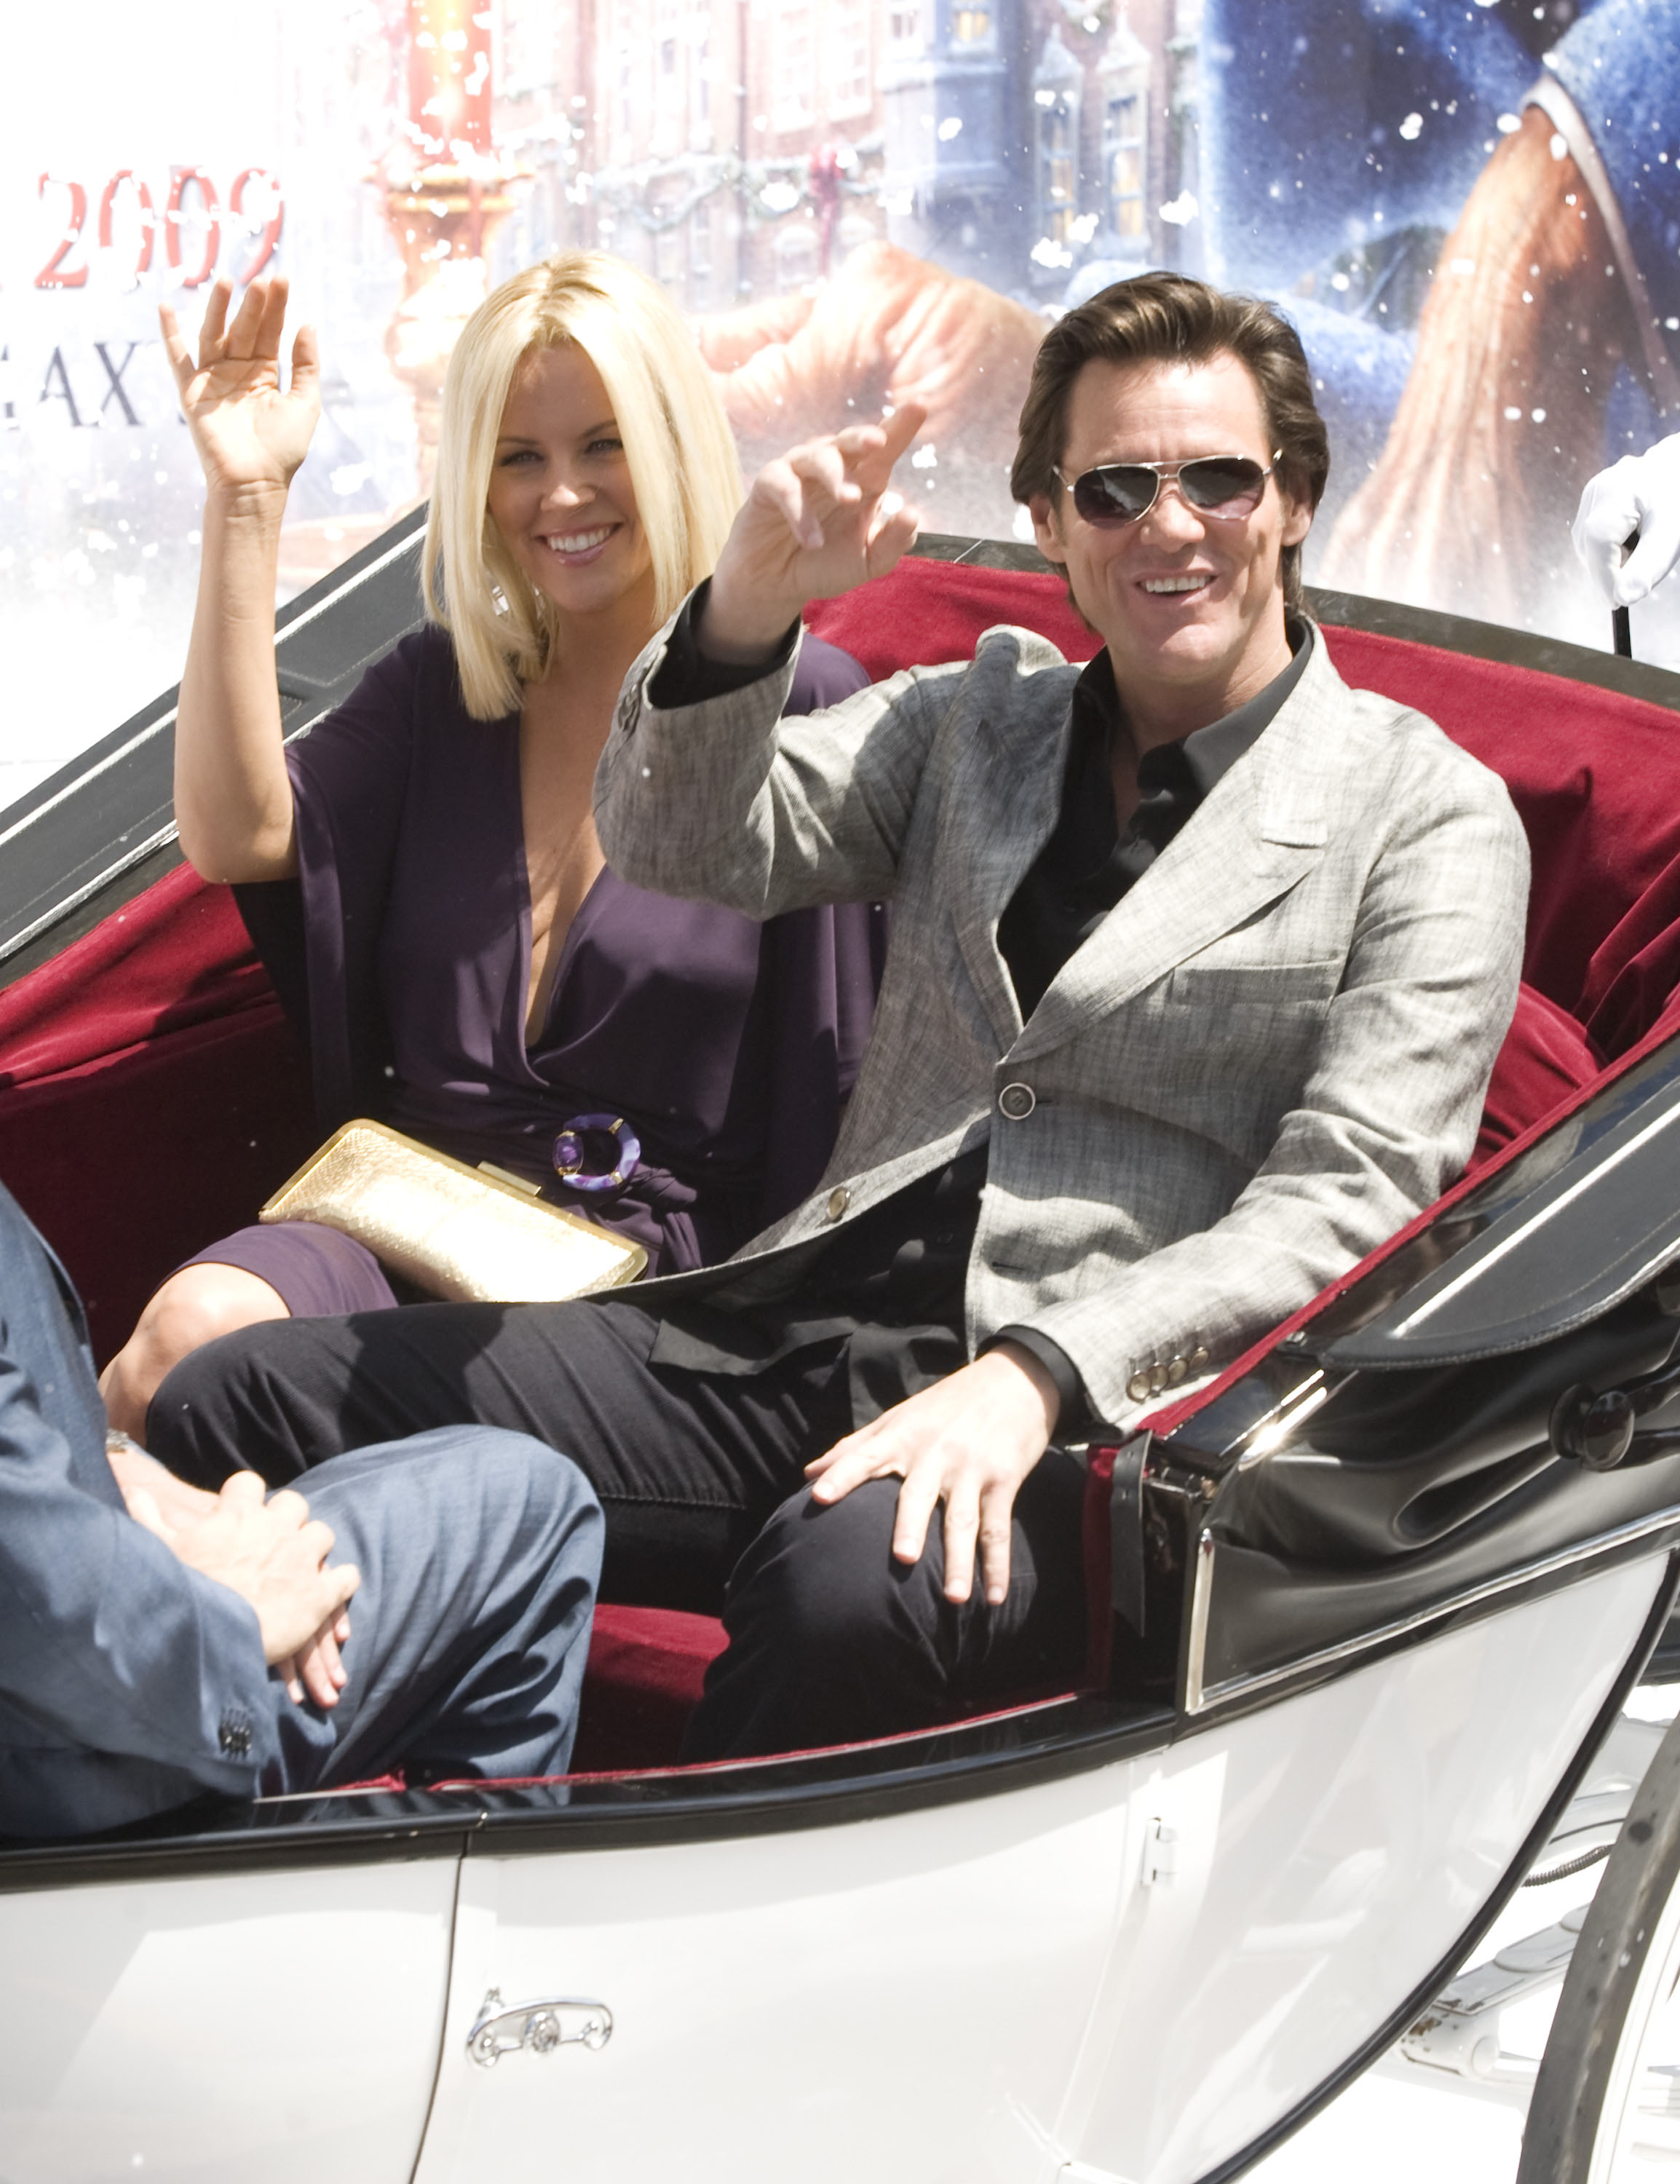 Jim Carrey Christmas Carol.Jim Carrey Hits Cannes With Snow A Christmas Carol